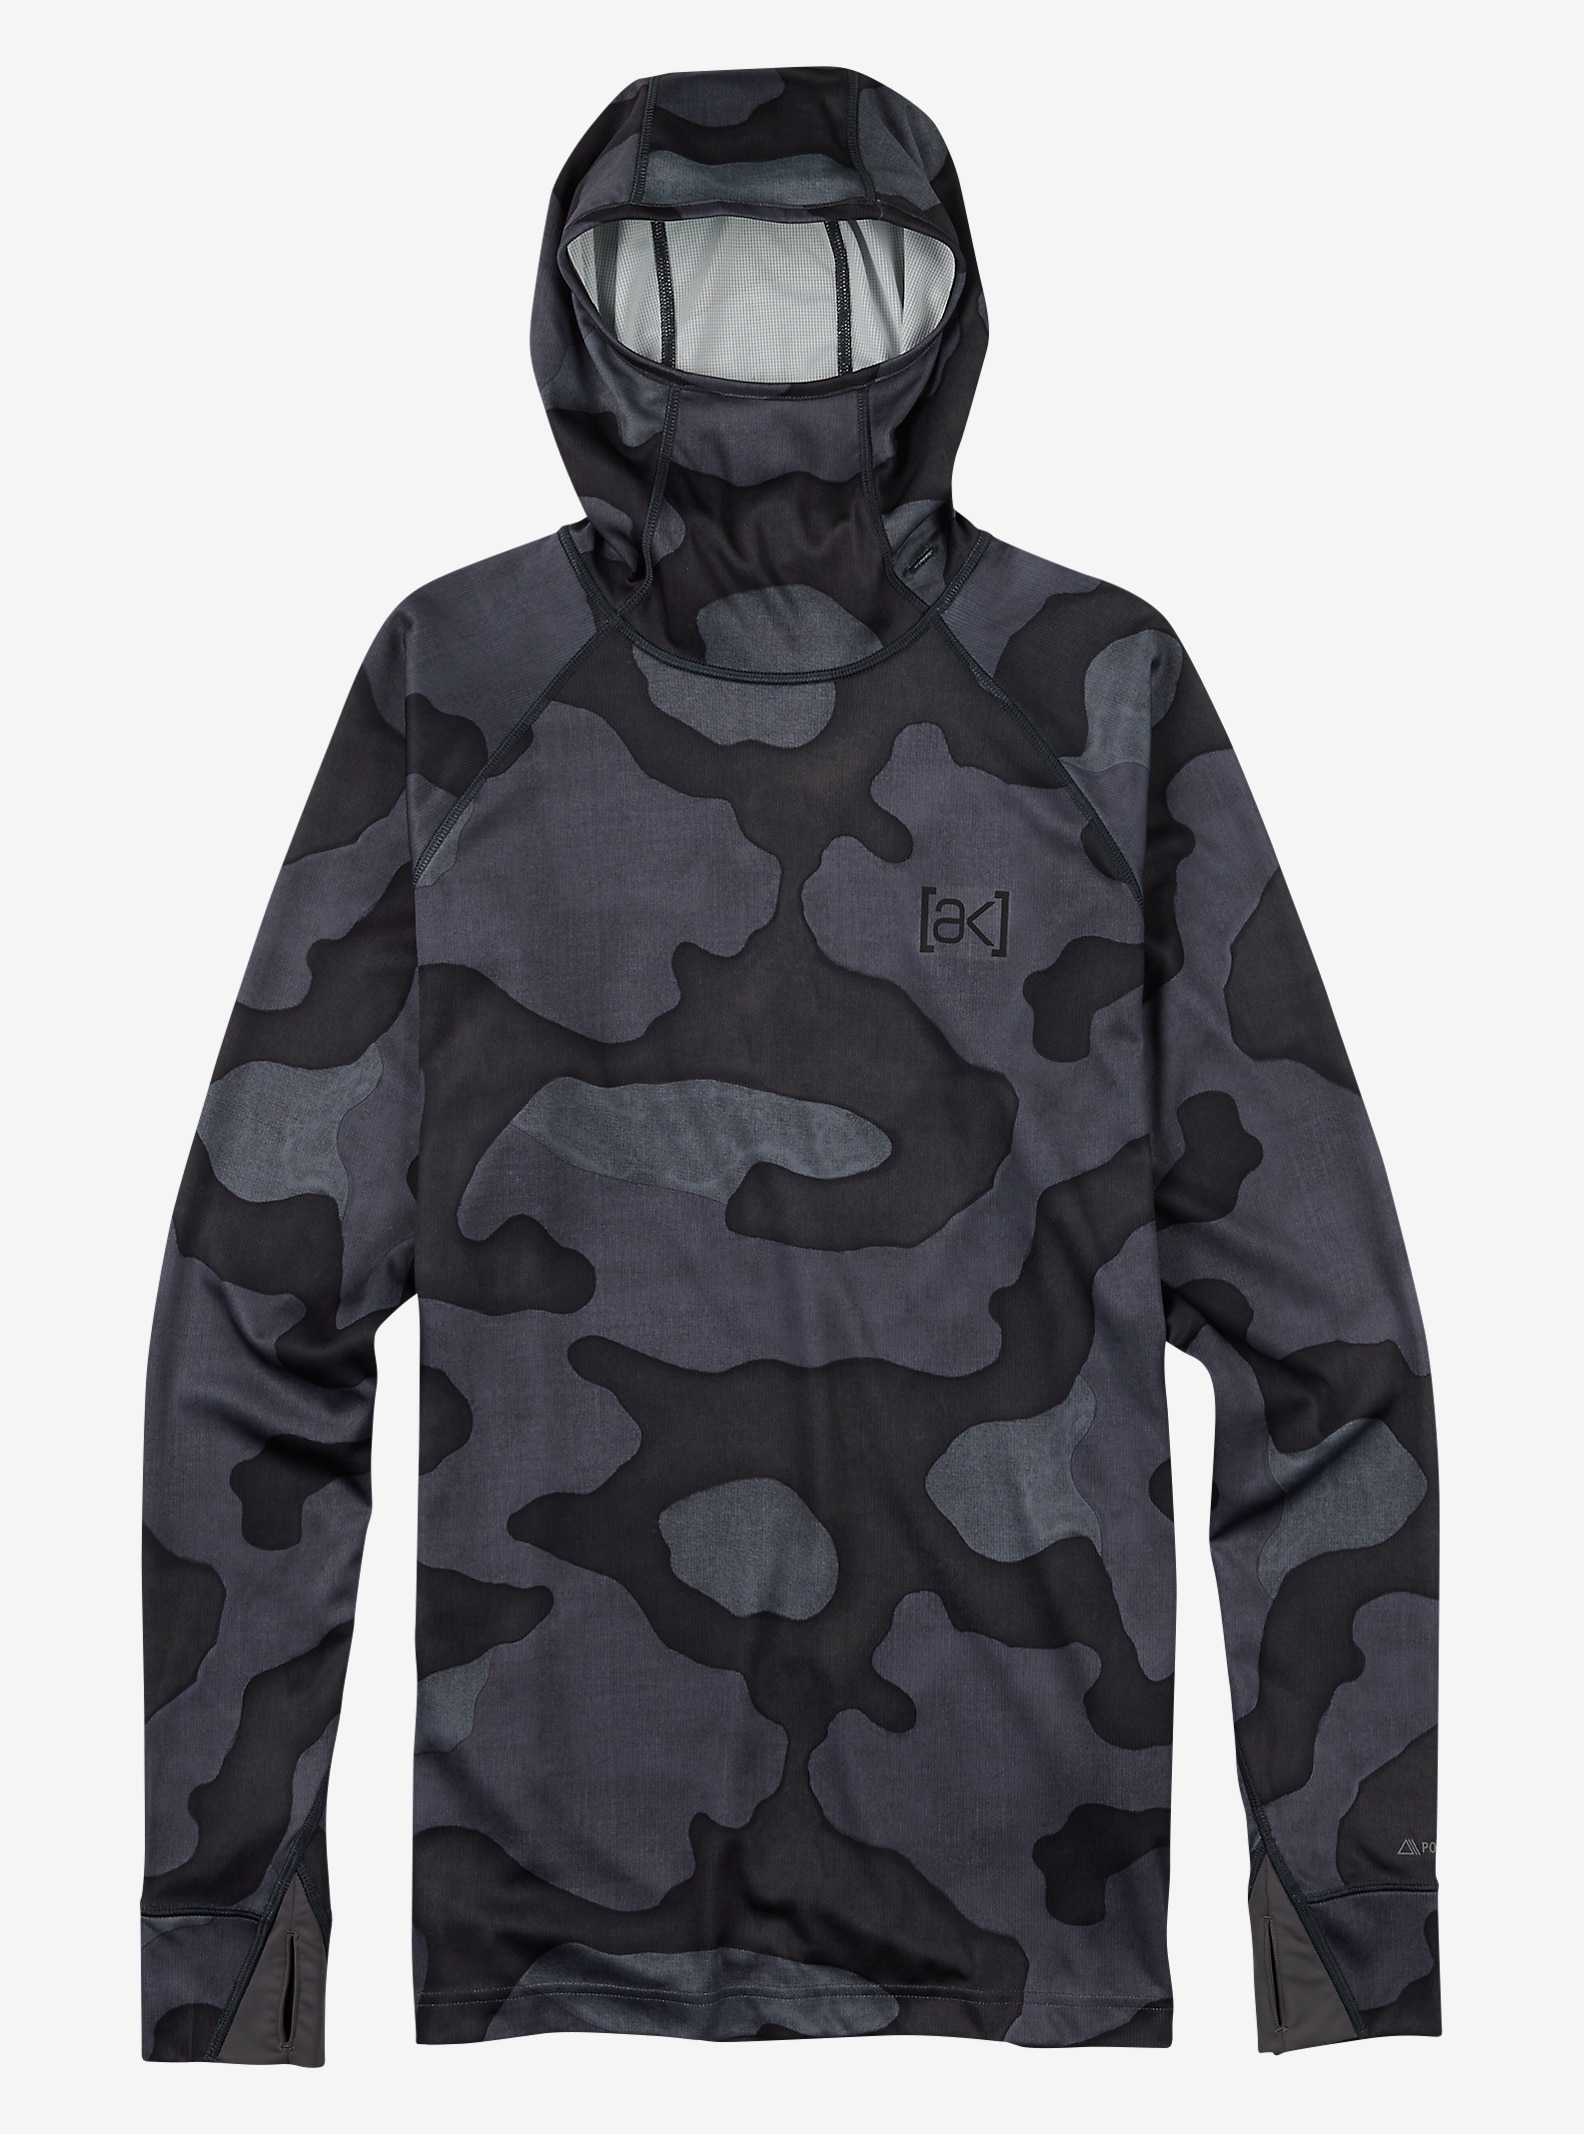 Burton [ak] Power Grid® Hood shown in Black Hombre Camo